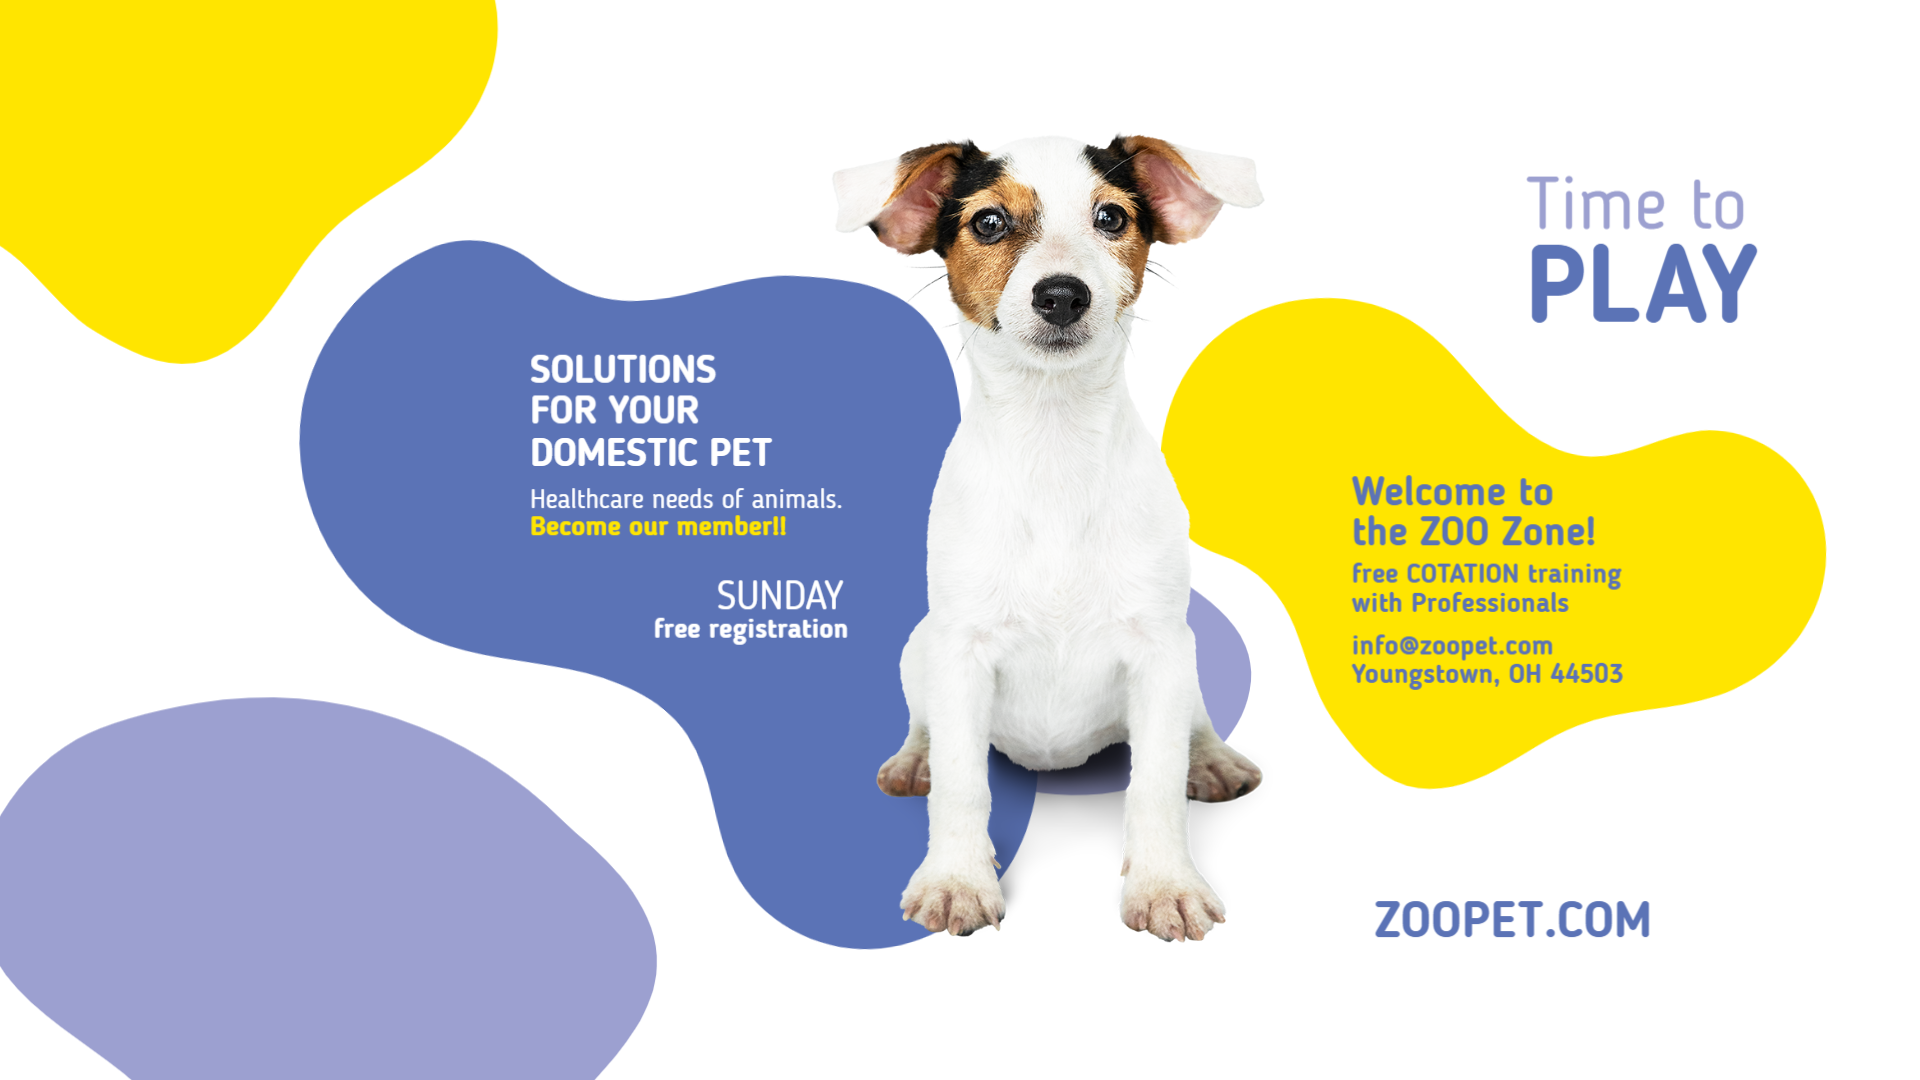 Zoopet Com Facebook Event Cover Medical Dental Veterinary Seedtale Rema Veterinary Technician Veterinary Technician Humor Veterinary Technician Quotes